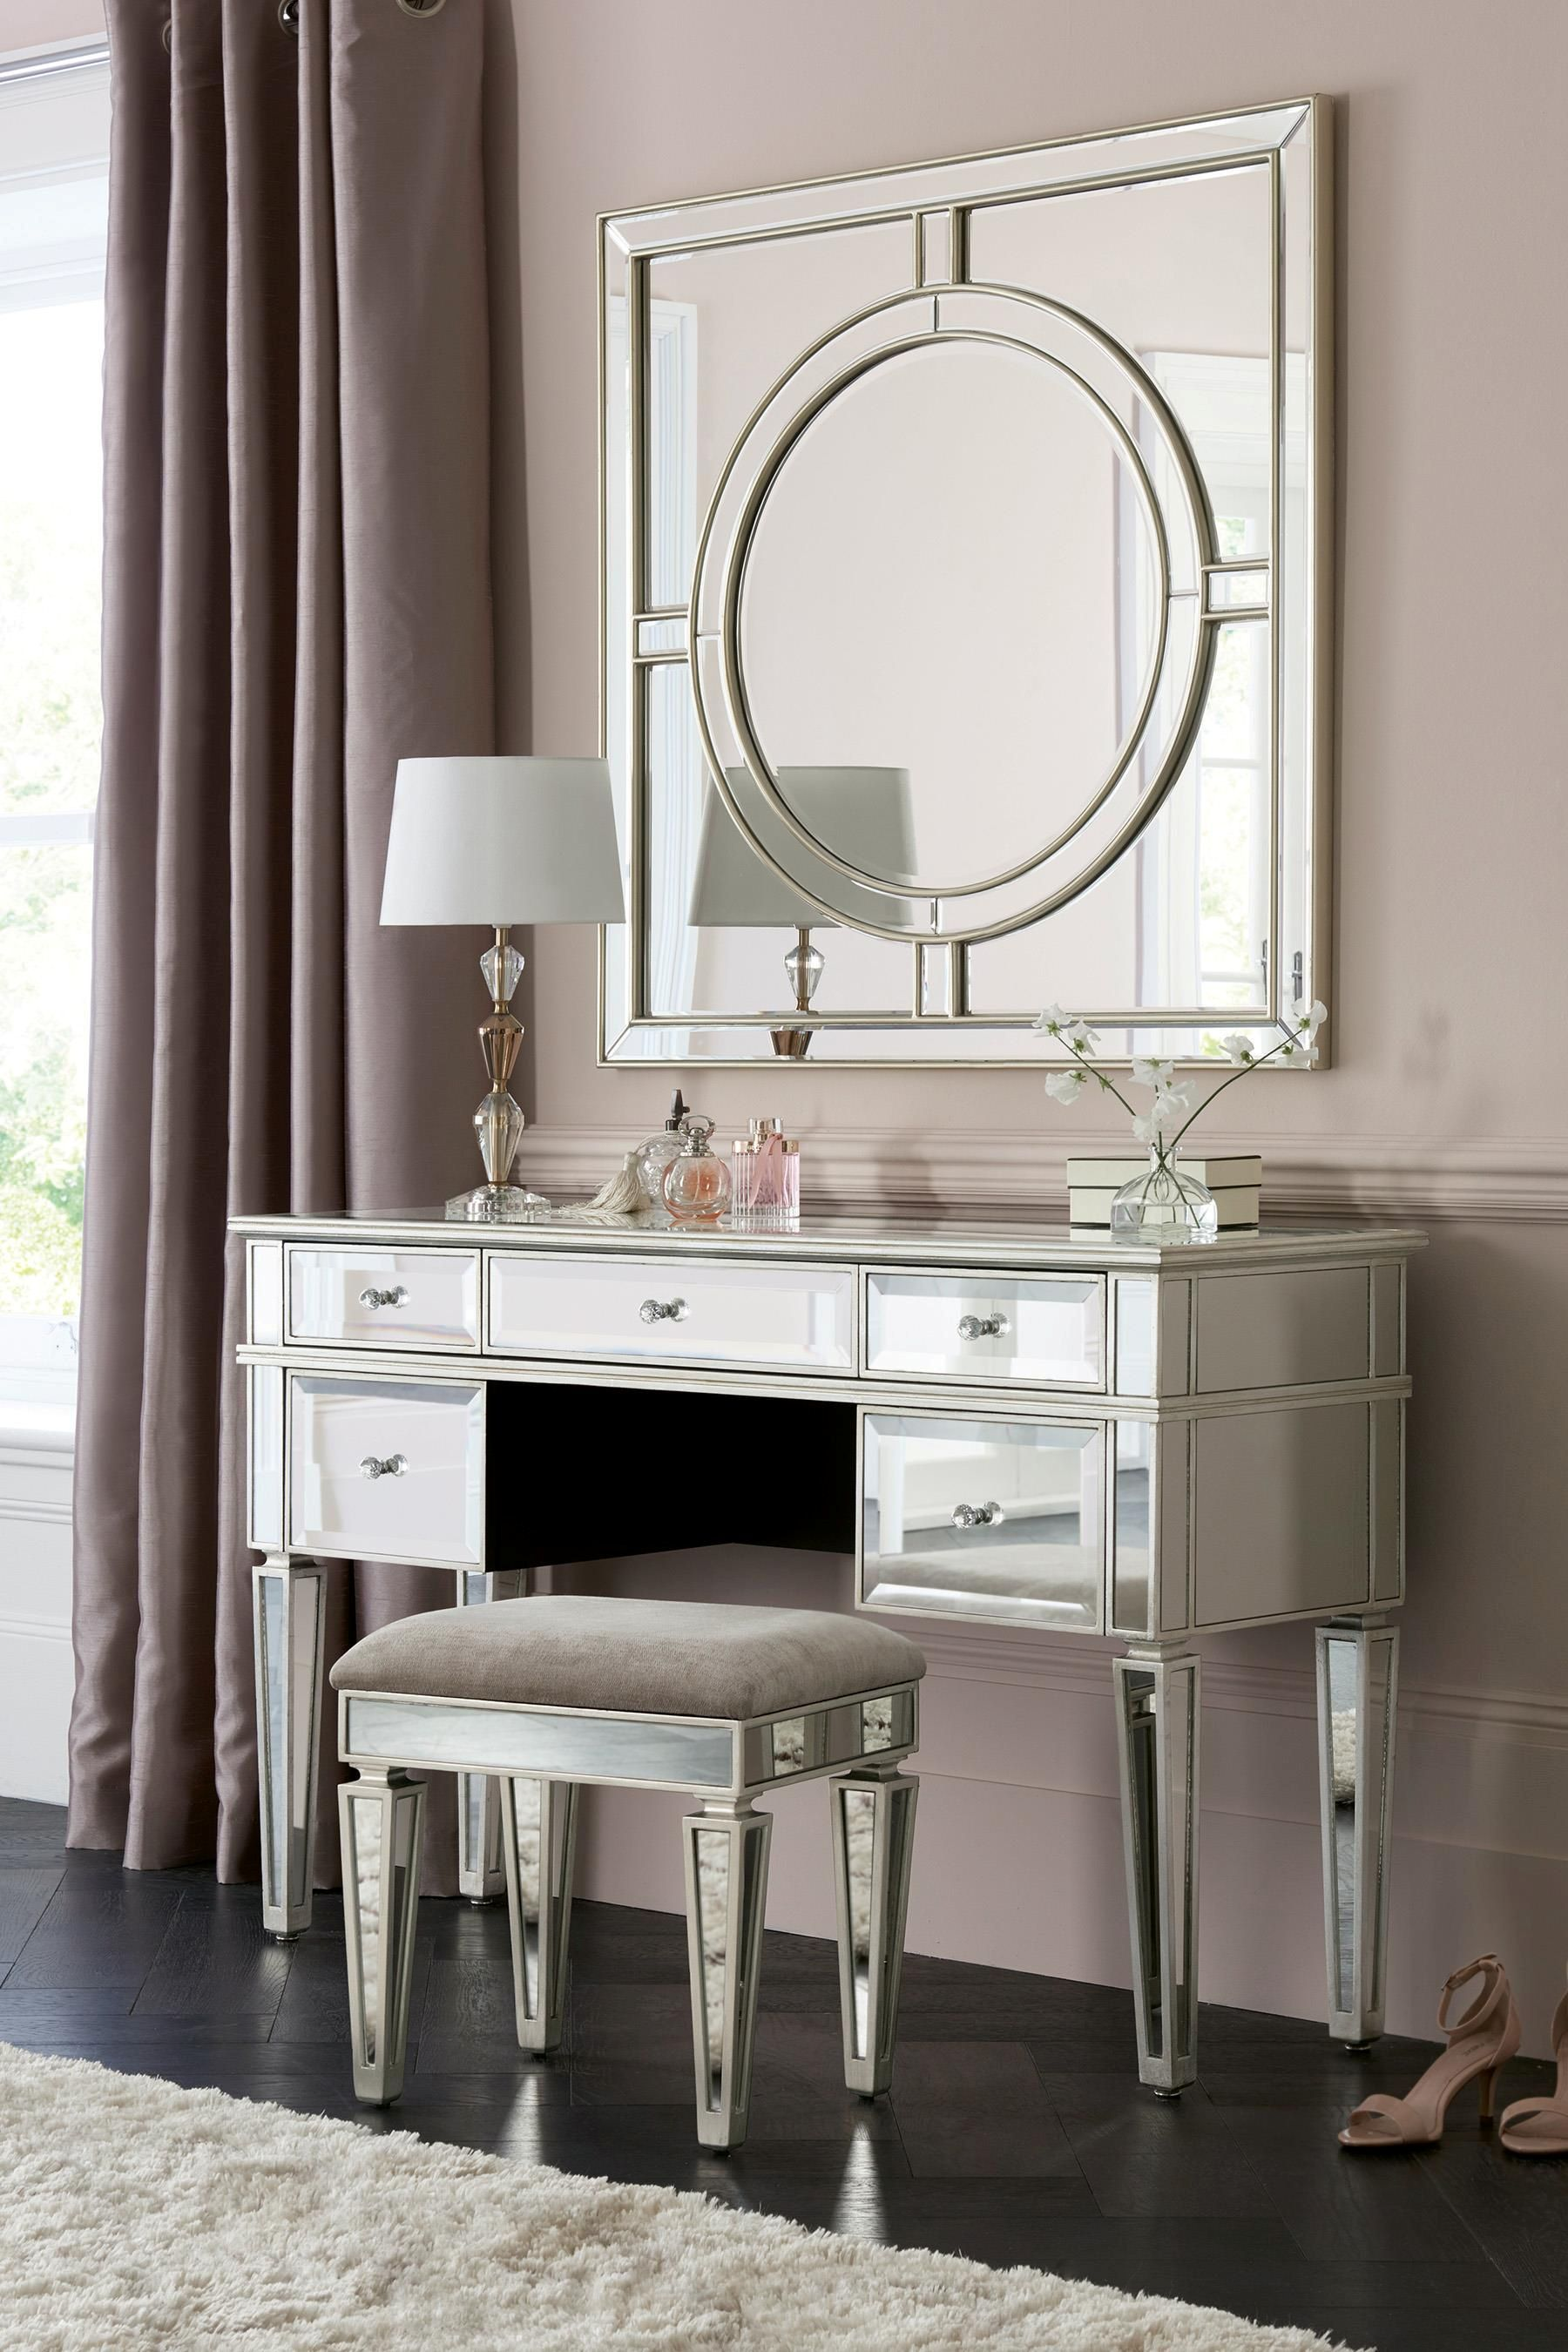 Buy Fleur Dressing Table From The Next Uk Online Shop Mirrored Bedroom Furniture Mirrored Furniture Dressing Table Design